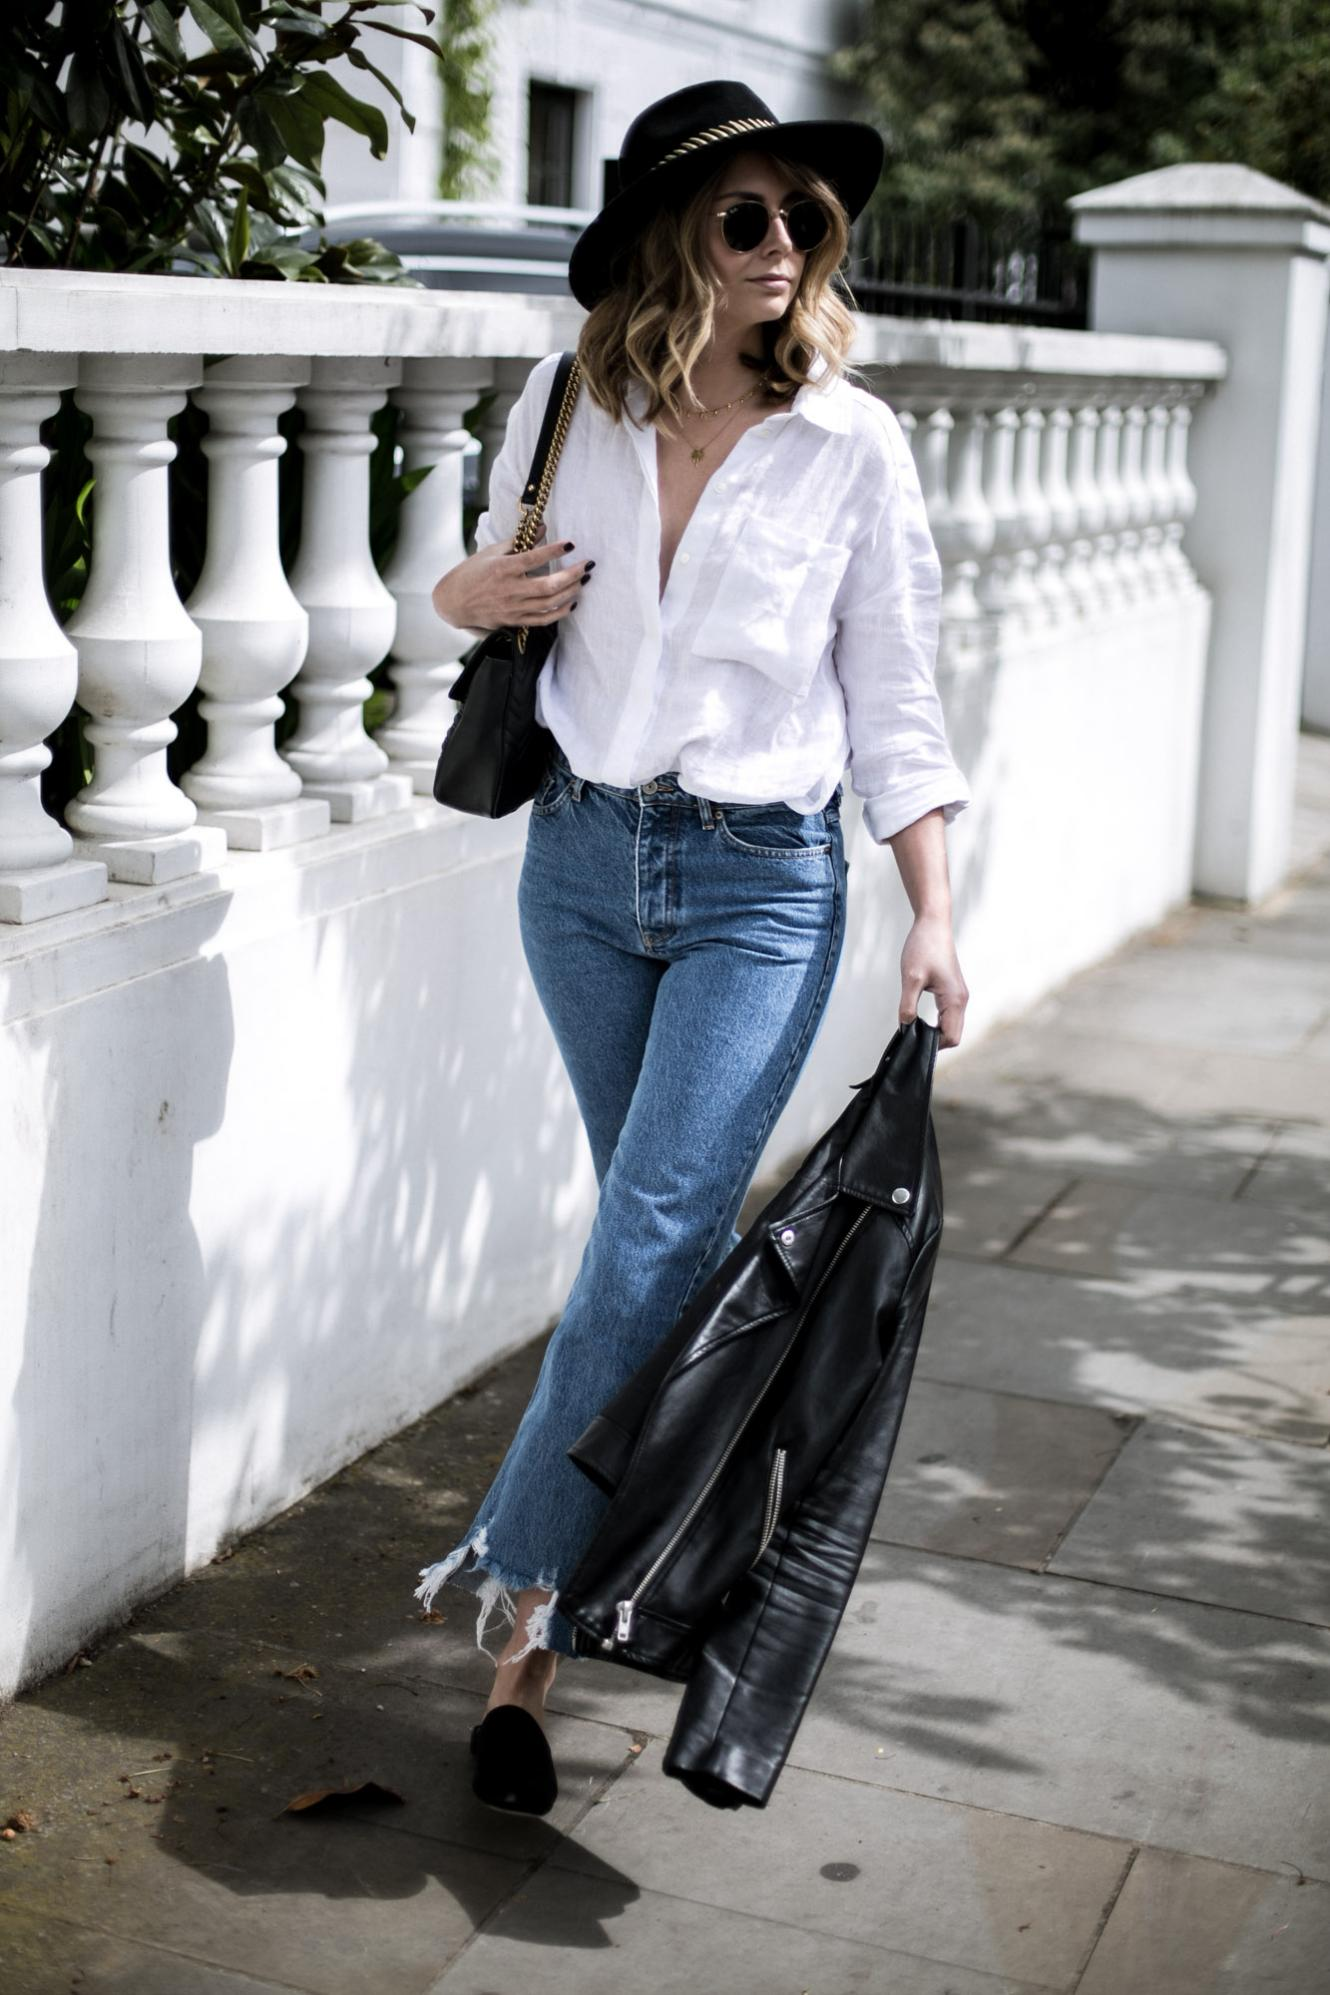 Emma Hill of EJSTYLE wears white linen shirt, distressed hem jeans, black leather biker jacket, fedora with gold band, Gucci Marmont bag, satin mules, casual spring outfit